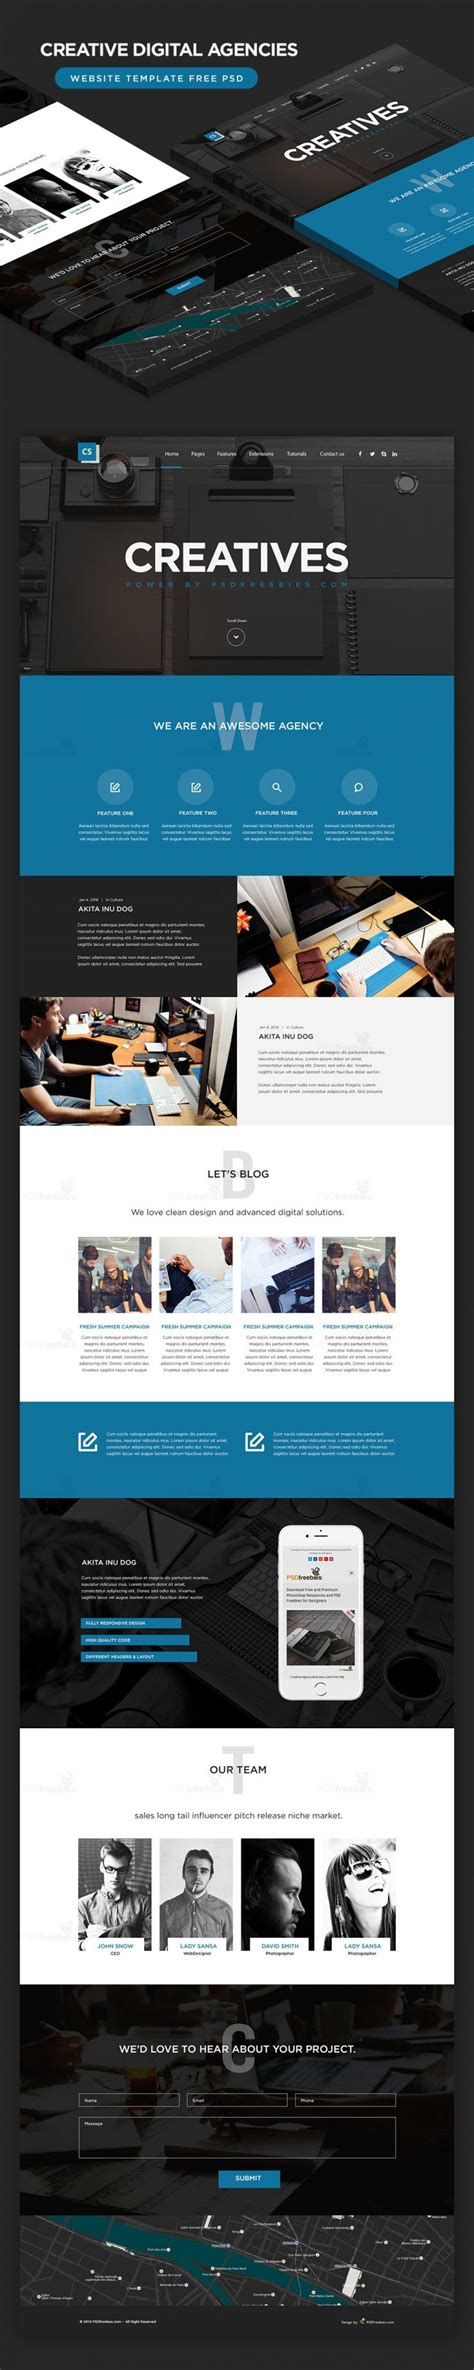 Creative Digital Agencies Website Template Free Psd Download Download Psd Digital Agency Website Templates